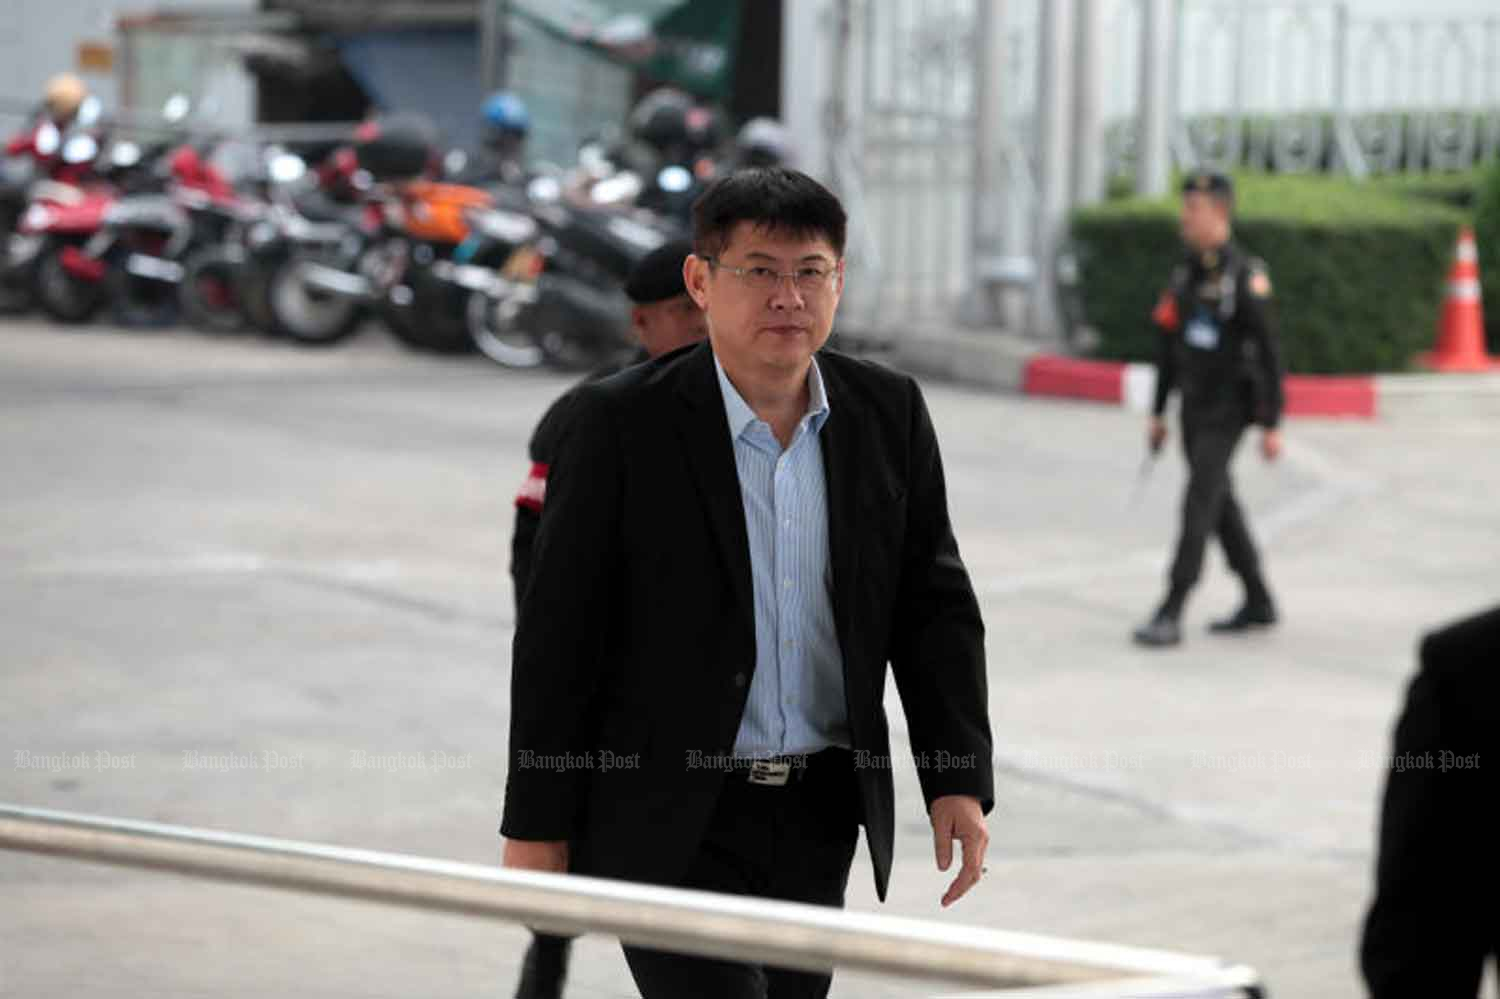 Former TV news anchor Sorrayuth Suthassanachinda arrives at the Central Criminal Court for Corruption and Misconduct Cases in Bangkok on Tuesday morning to hear the Supreme Court's decision on his appeal. (Photo by Chanat Katanyu)